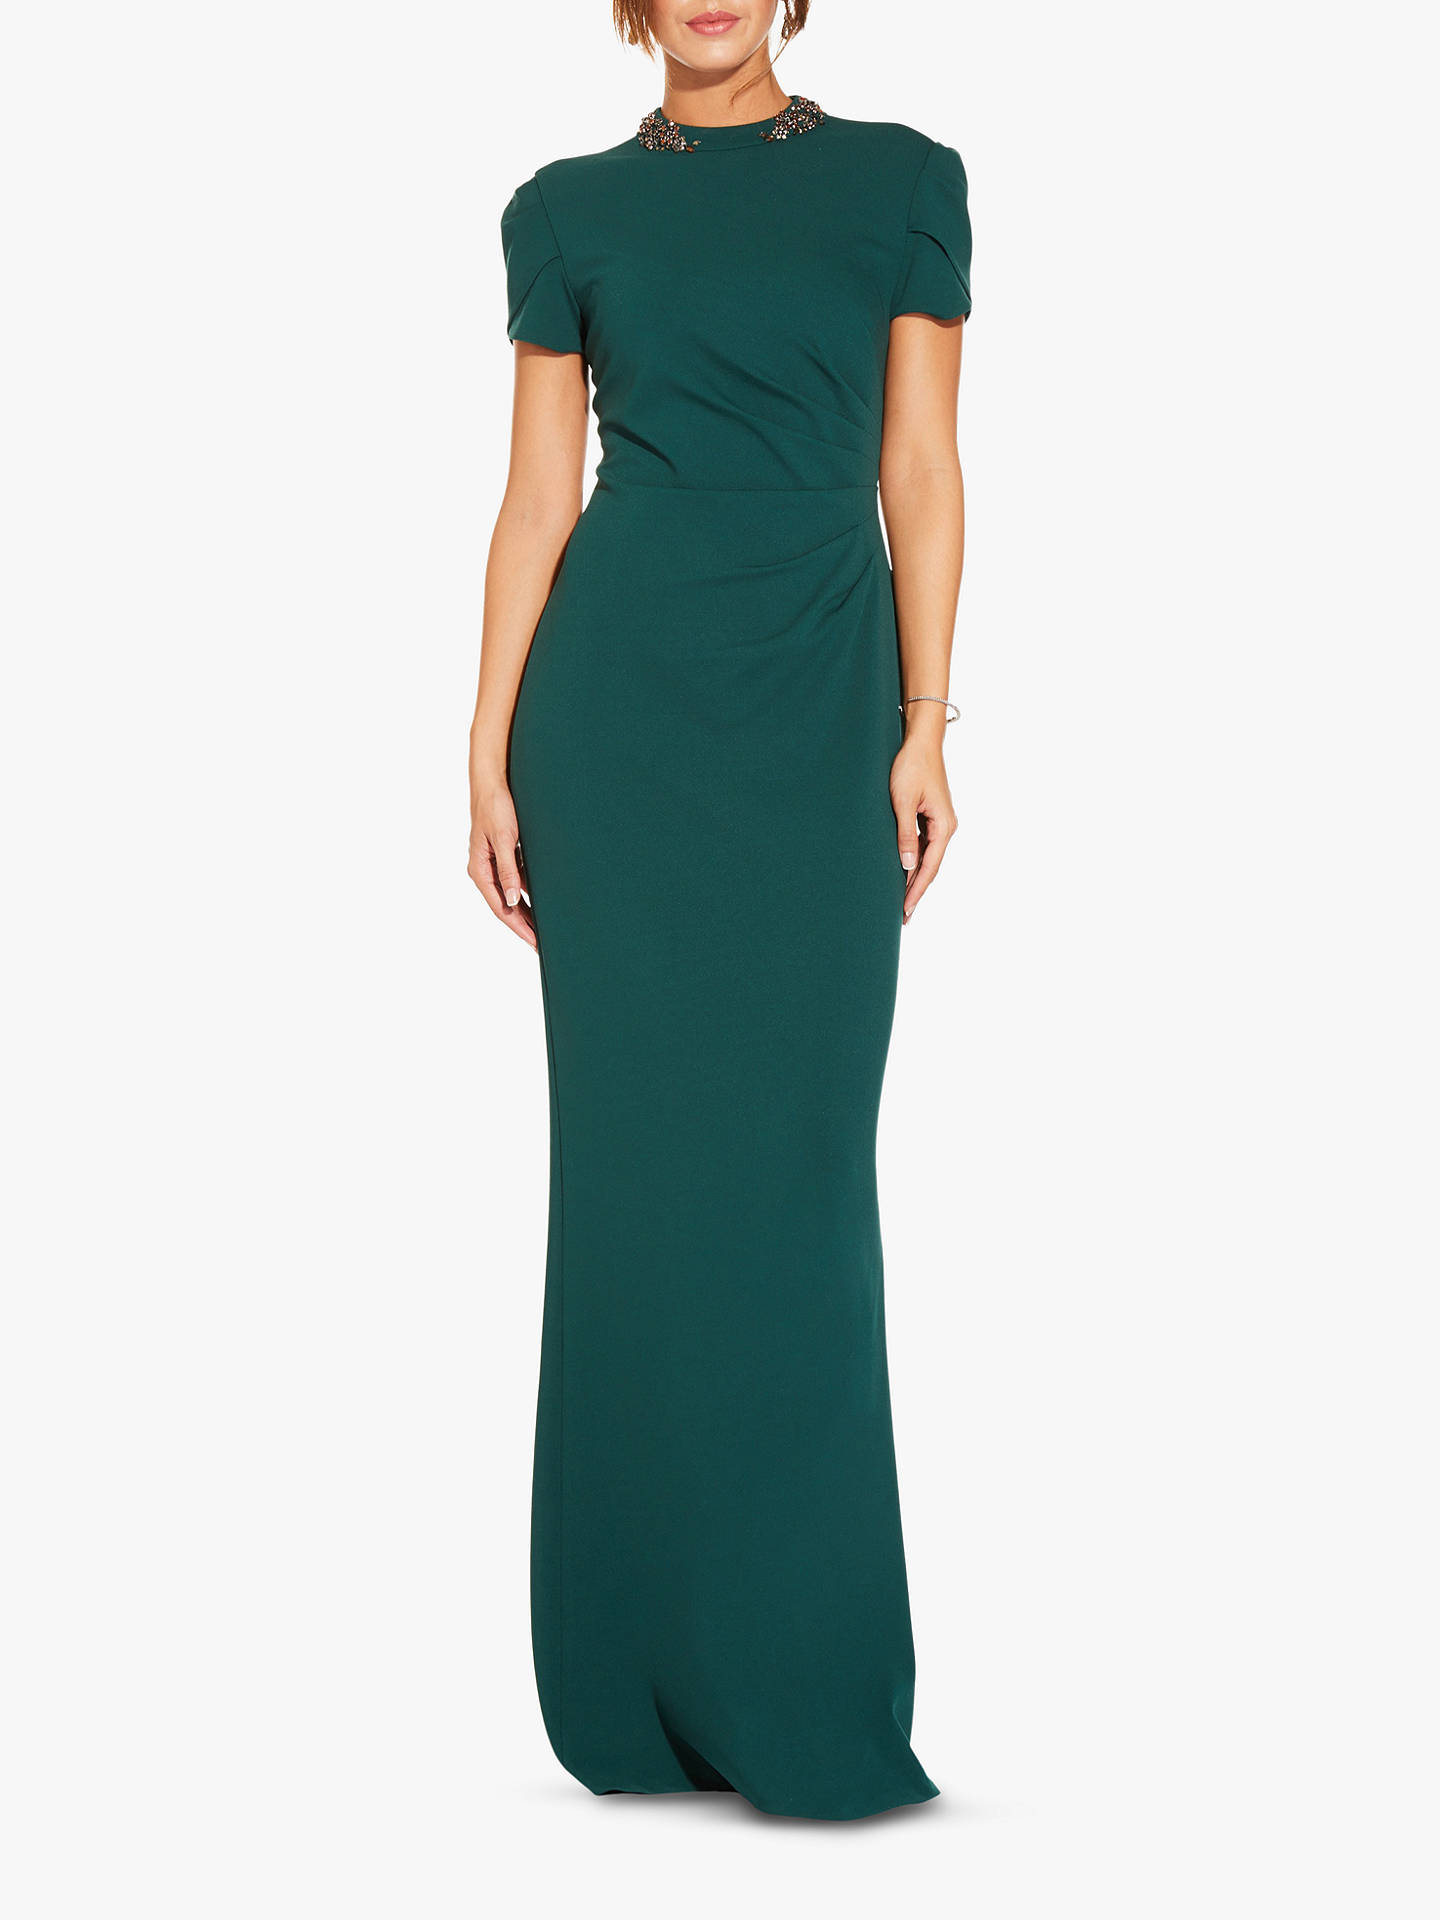 BuyAdrianna Papell Tulip Sleeve Crepe Dress, Dusty Emerald, 6 Online at johnlewis.com